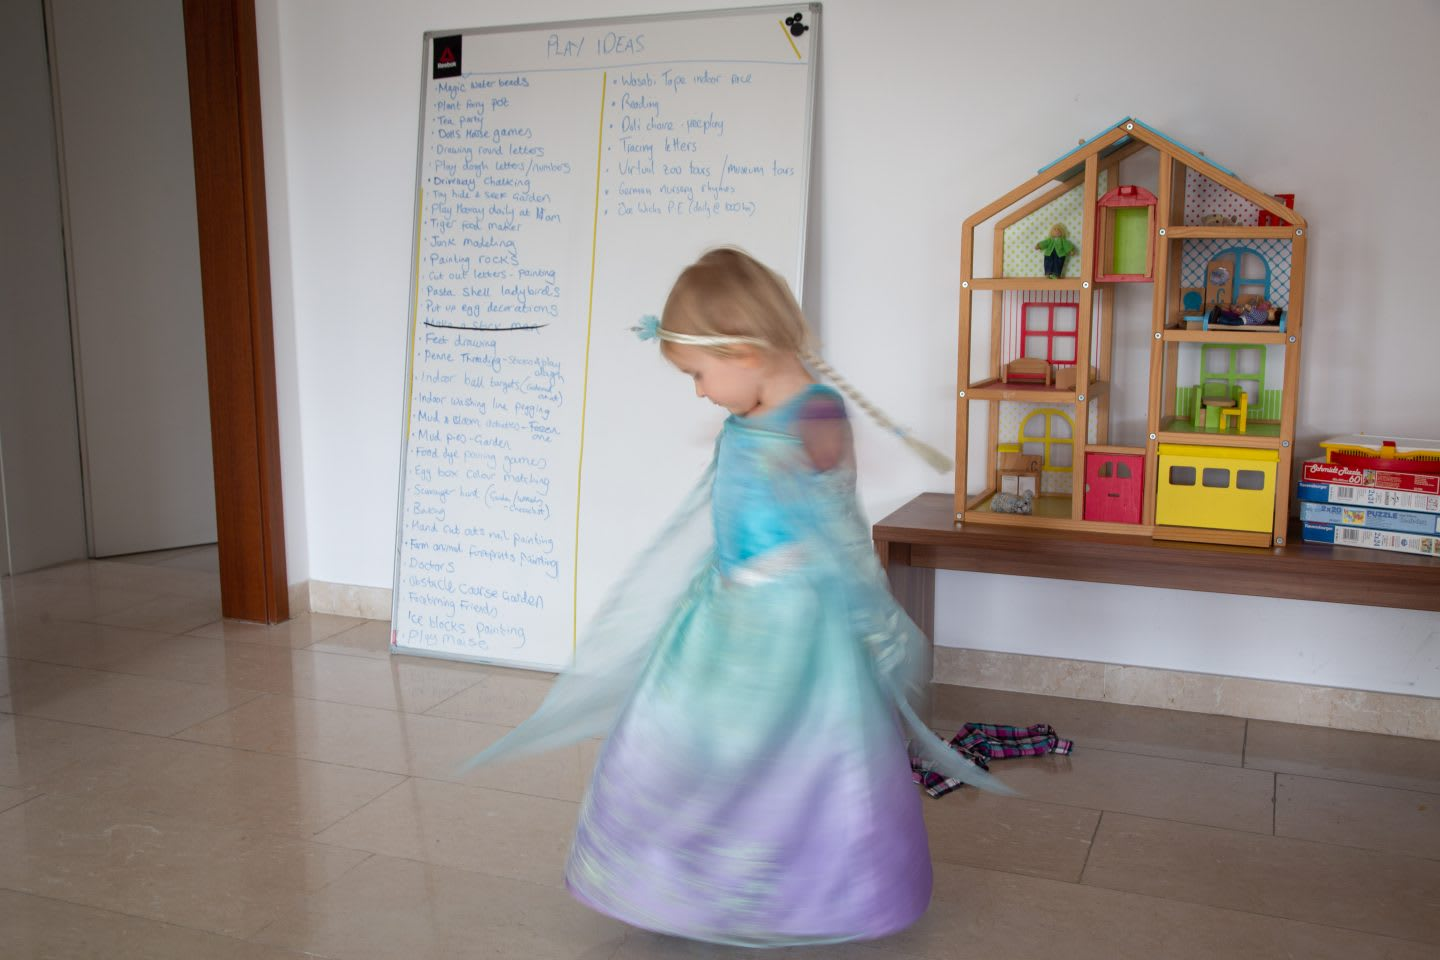 Girl dancing at home in princess costume and a whiteboard that shows a list of play ideas in background. working from home with kids. Habits and routines, Parenting, coronavirus.